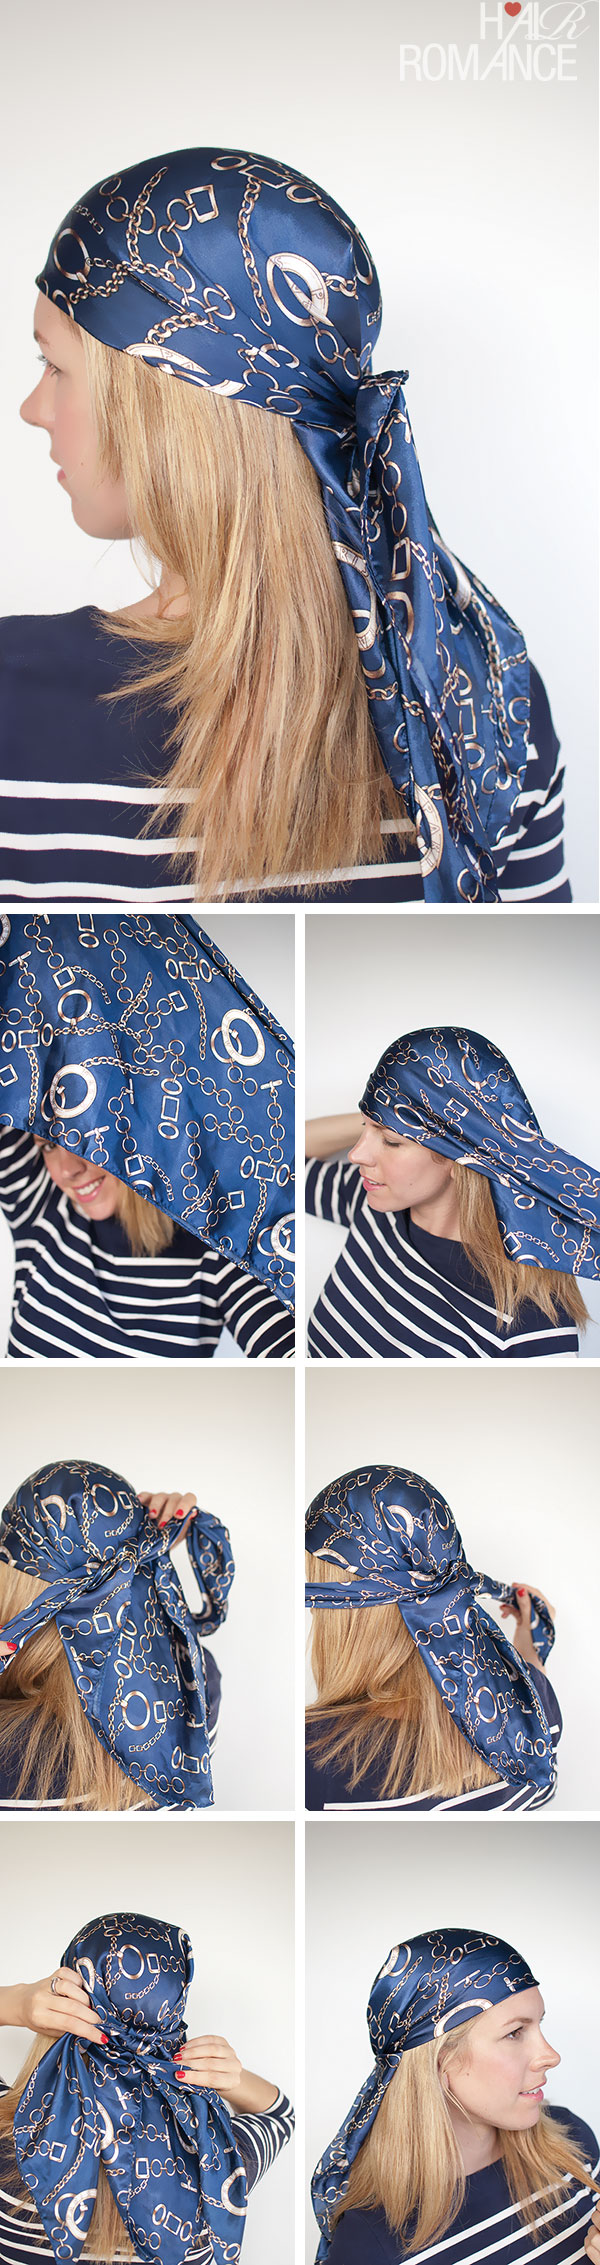 Hair Romance - Headscarf three ways - aye aye captain